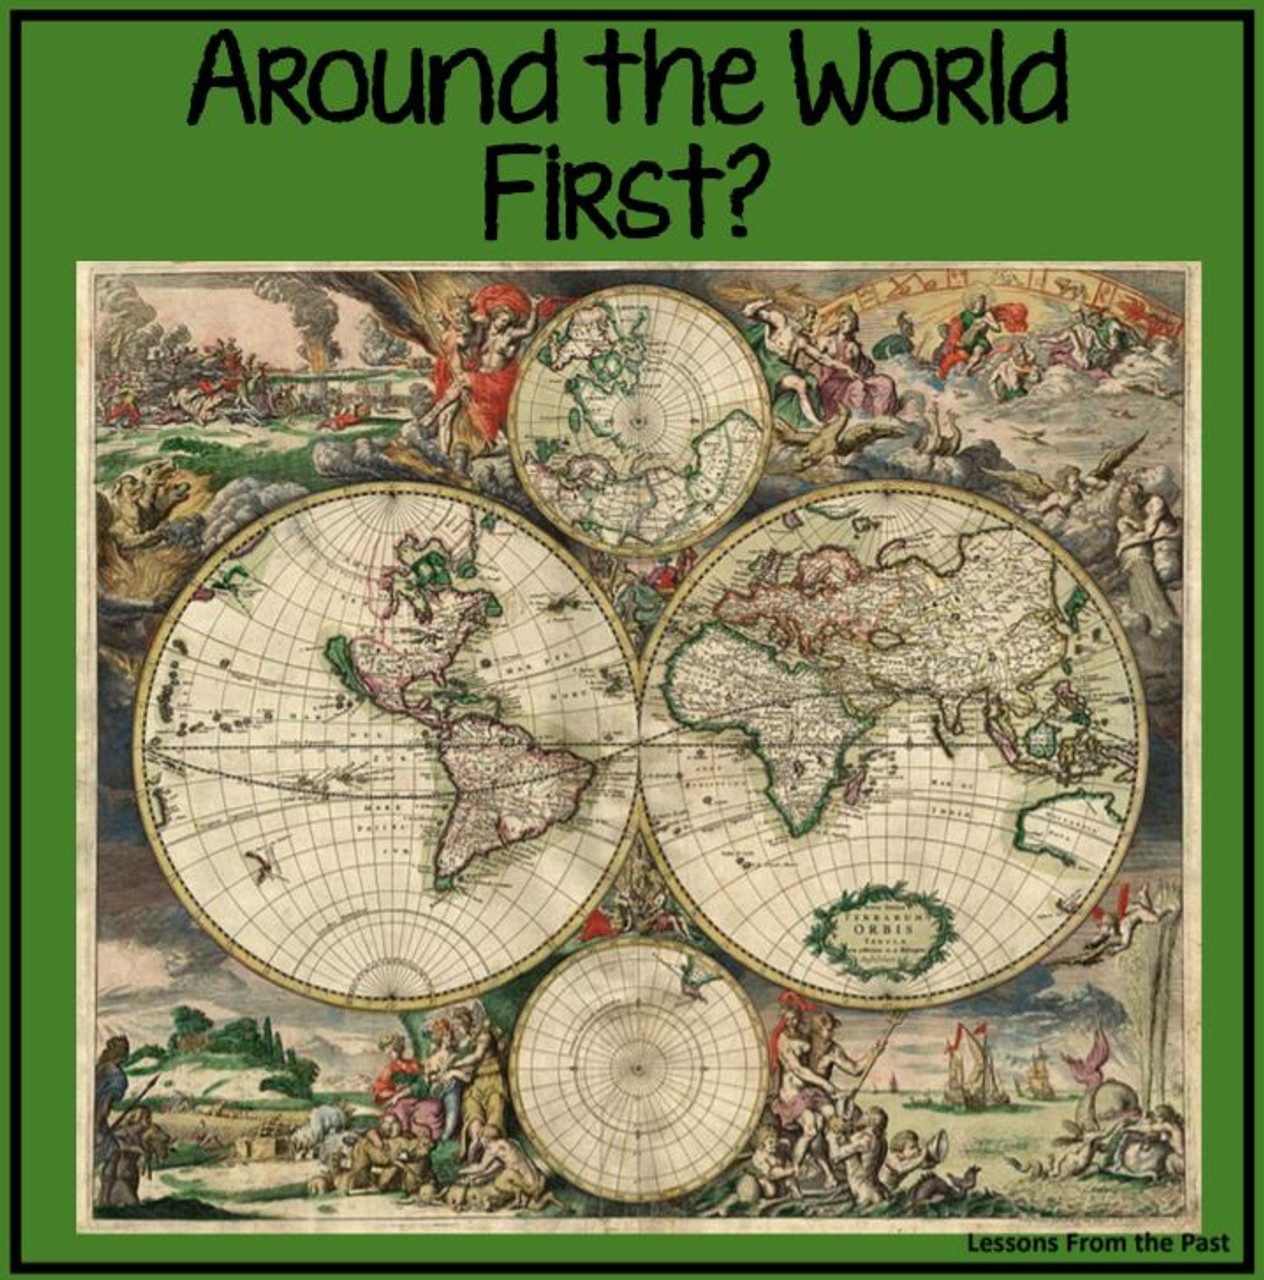 Around the world first european explorers free amped up learning around the world first european explorers free gumiabroncs Image collections